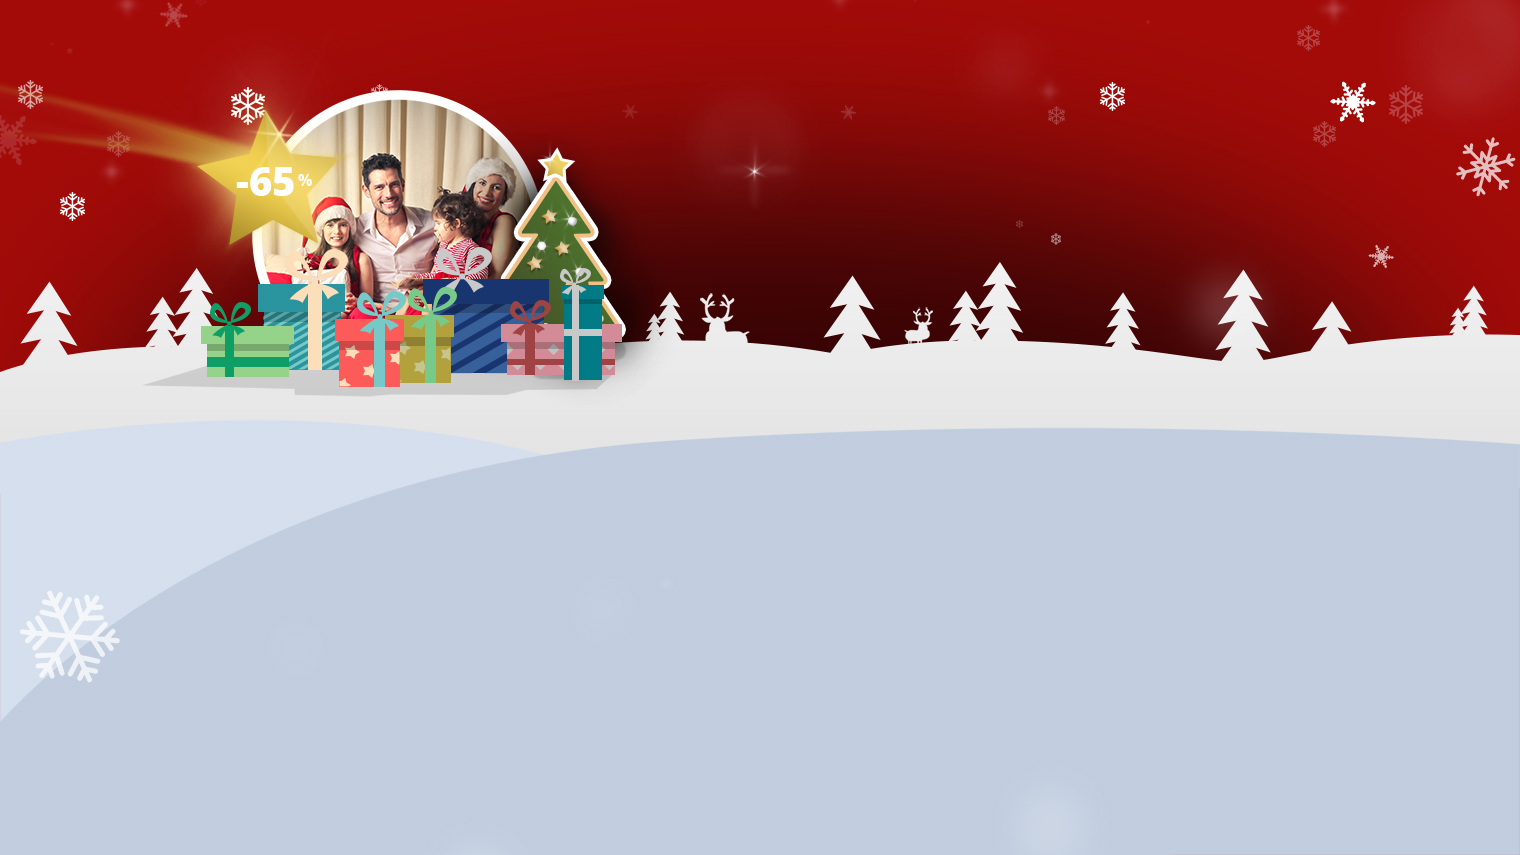 Christmas shopping with discounts of up to 65%!